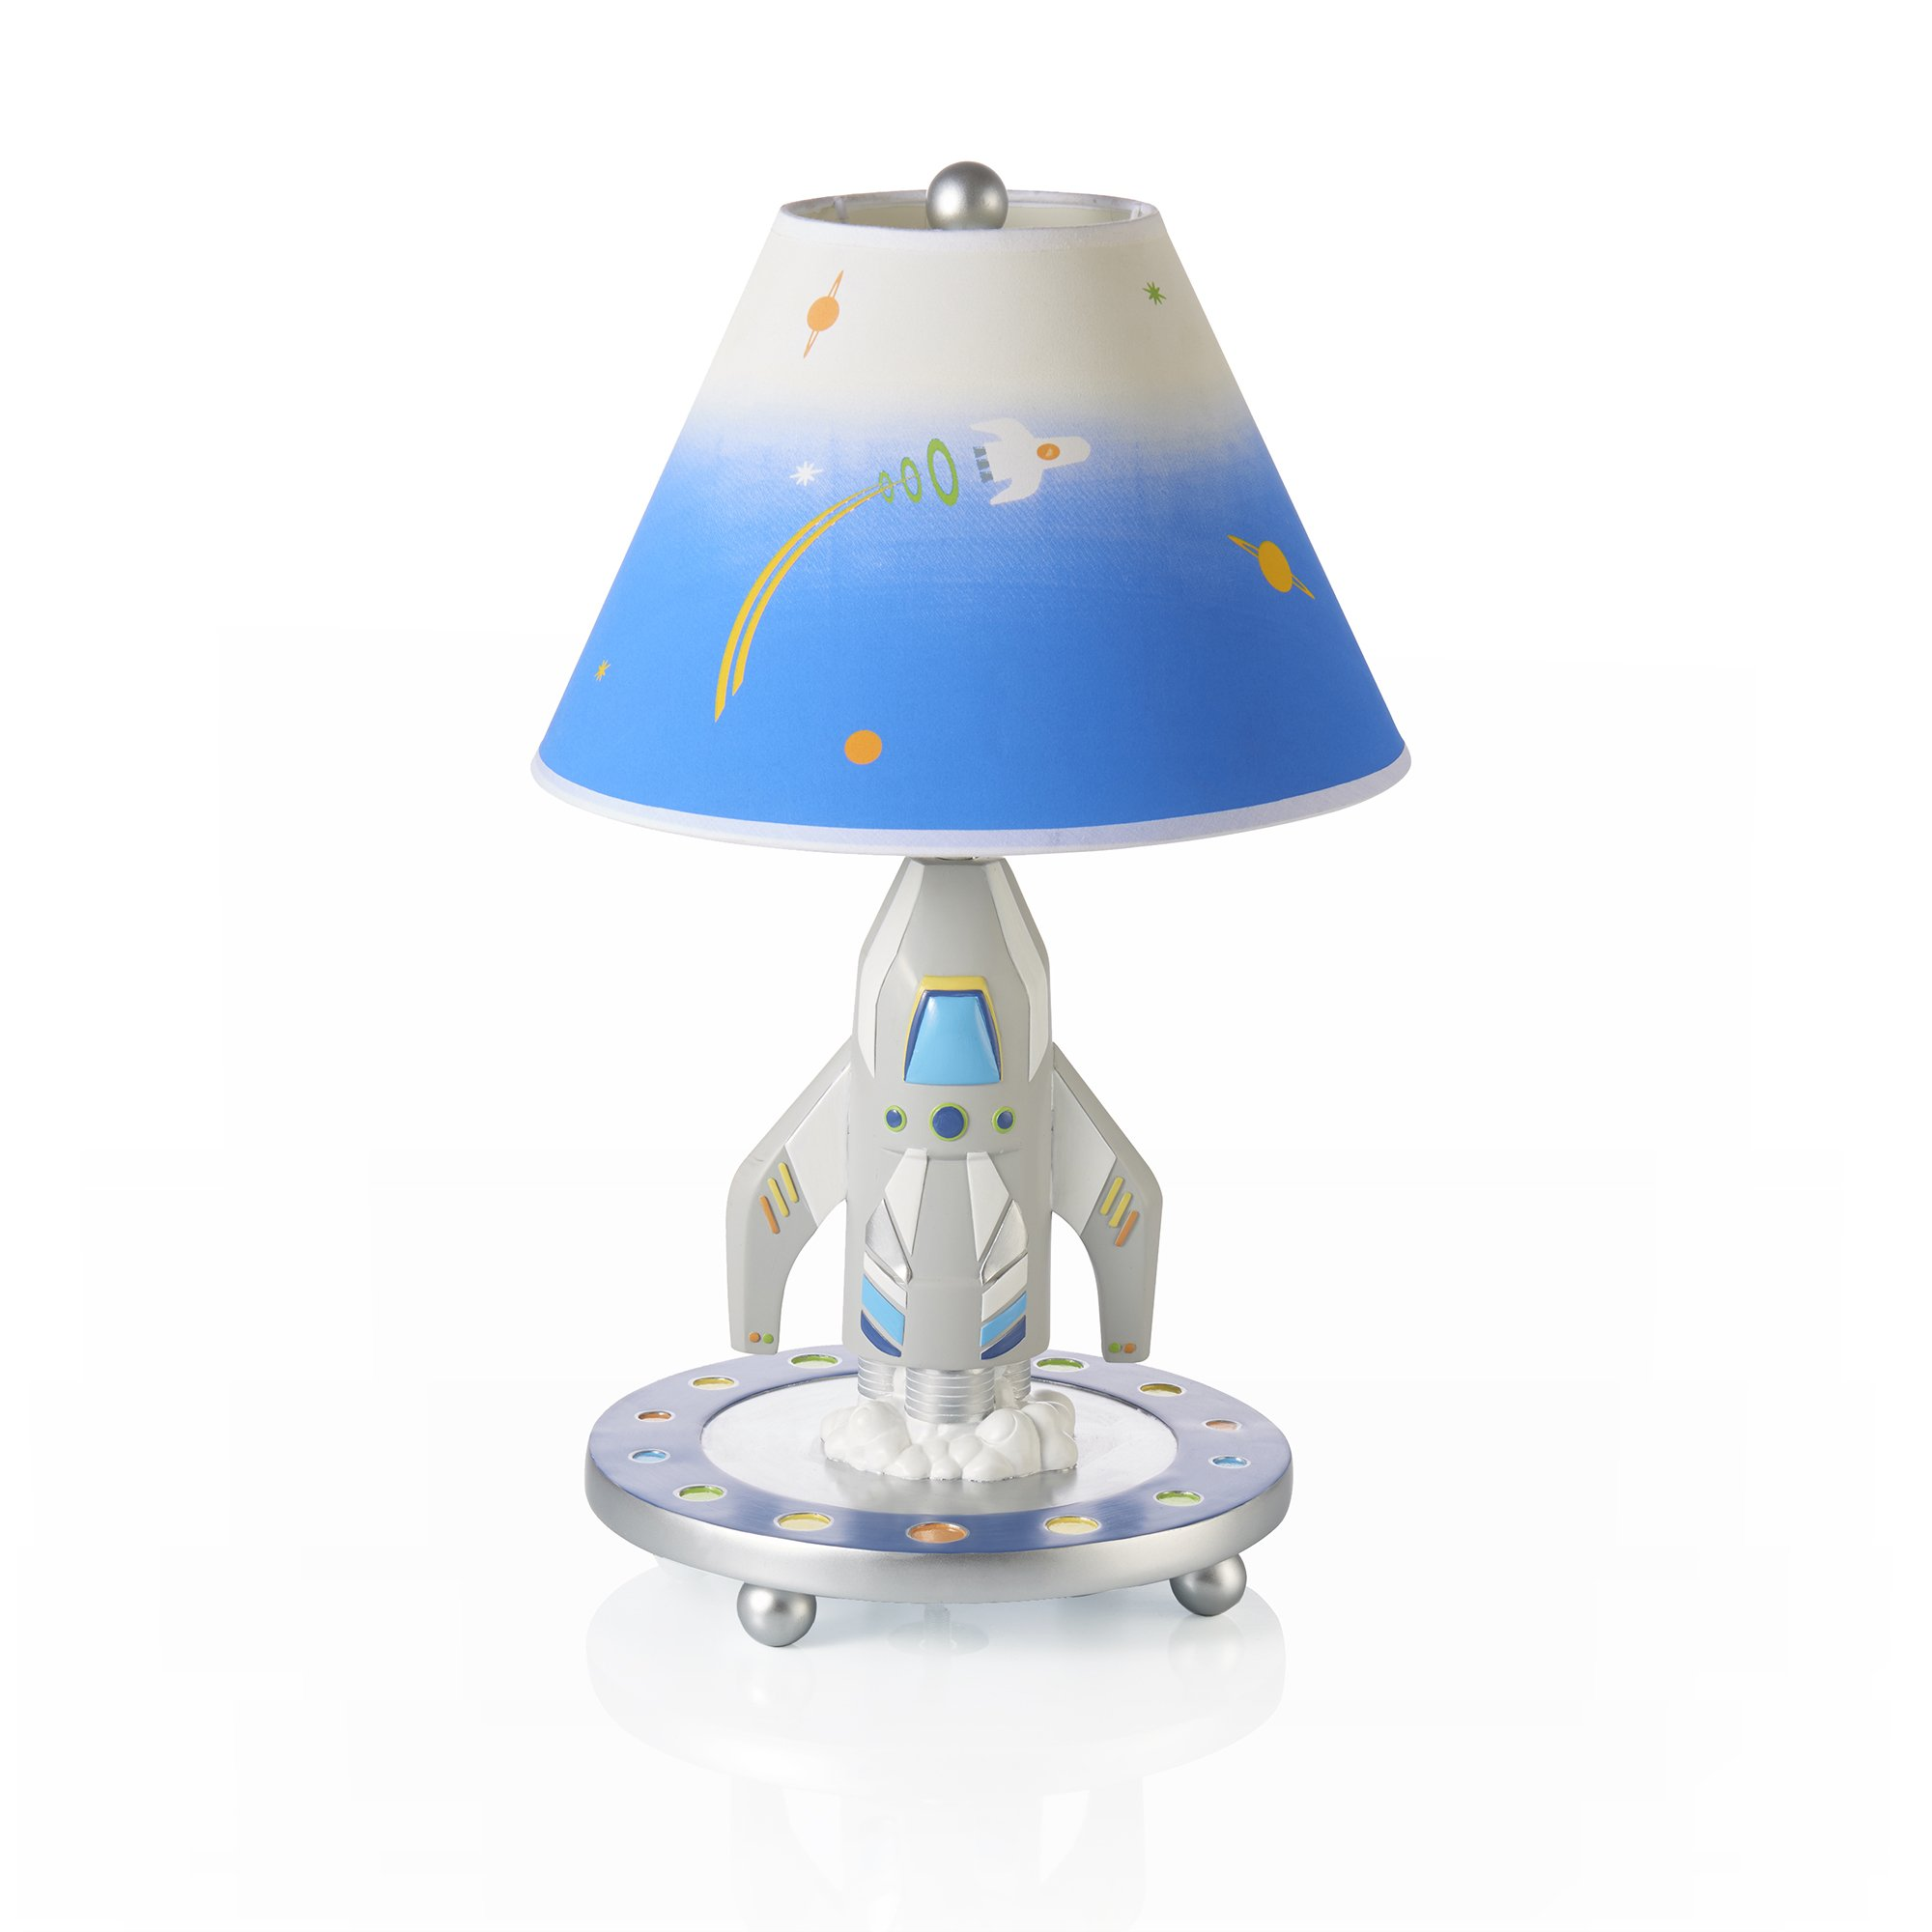 design for of lighting nursery decorative floor stand wooden kids lamp single laminate large little boy light rooms room shade size night girls lamps white nightstand elm beige full pure base bedroom portable west decors round table baby girl teenage boys idea